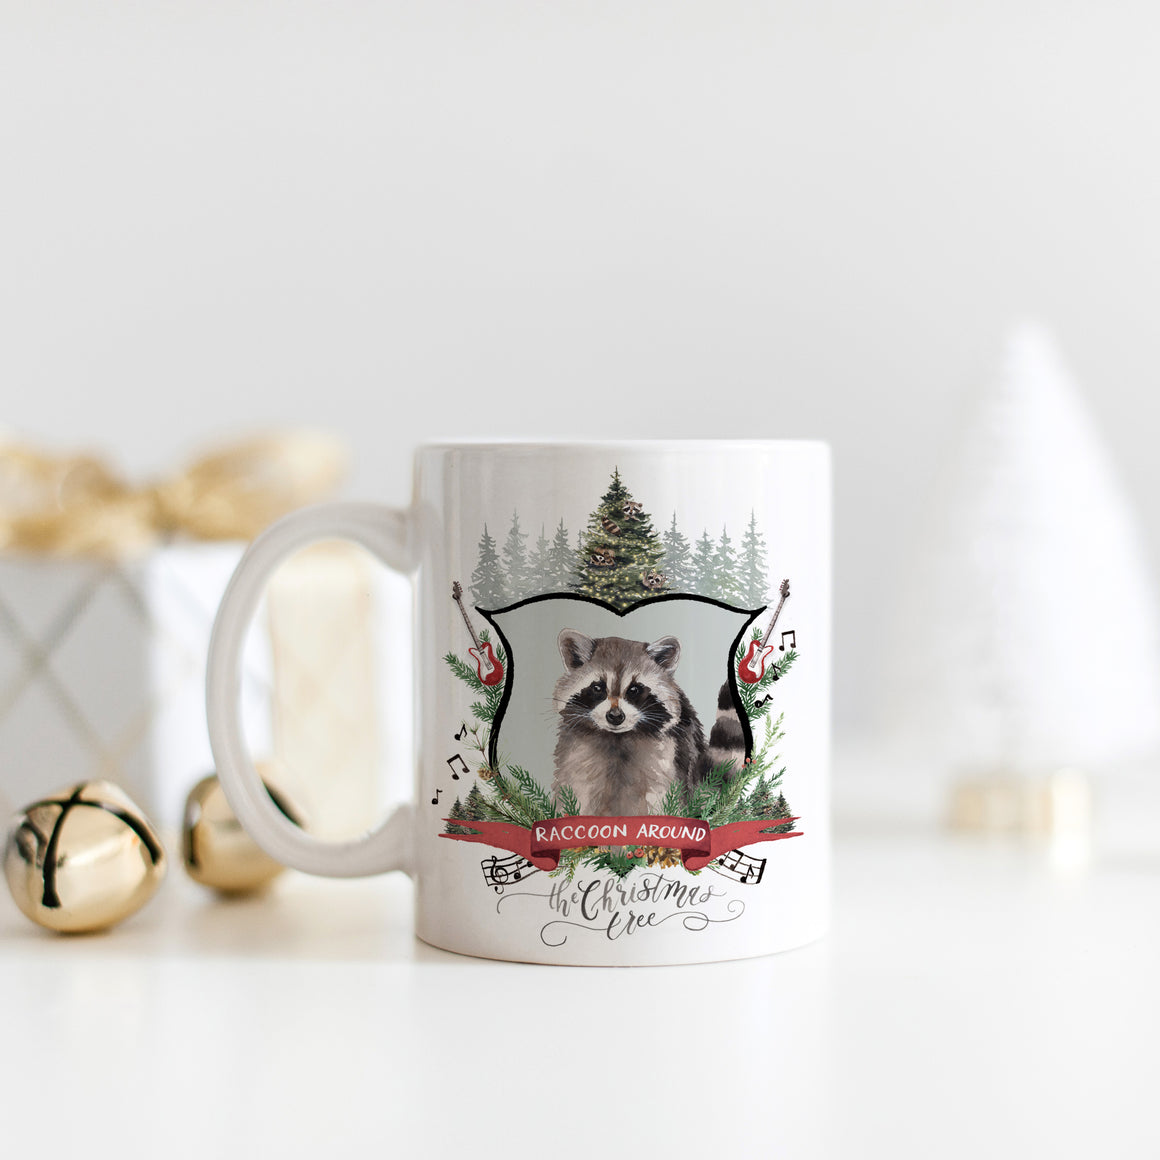 Raccoon Around the Christmas Tree Mug